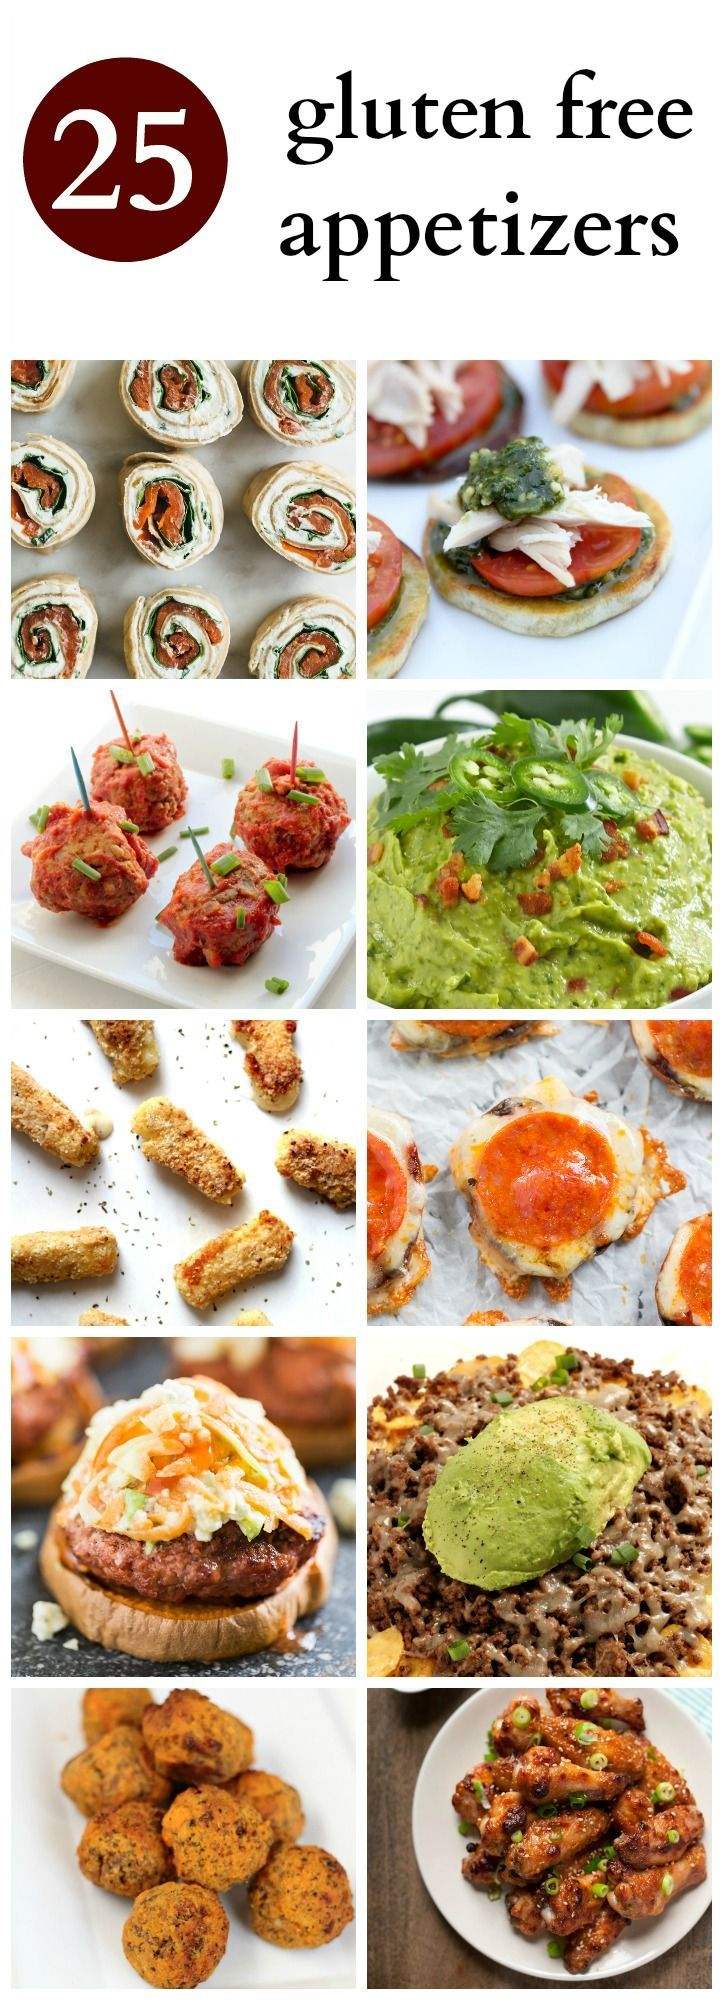 Gluten free appetizers 25 recipes gluten free snacks and dinners here are 25 gluten free appetizers perfect to bring to a party or snack on before dinner most are paleo forumfinder Images